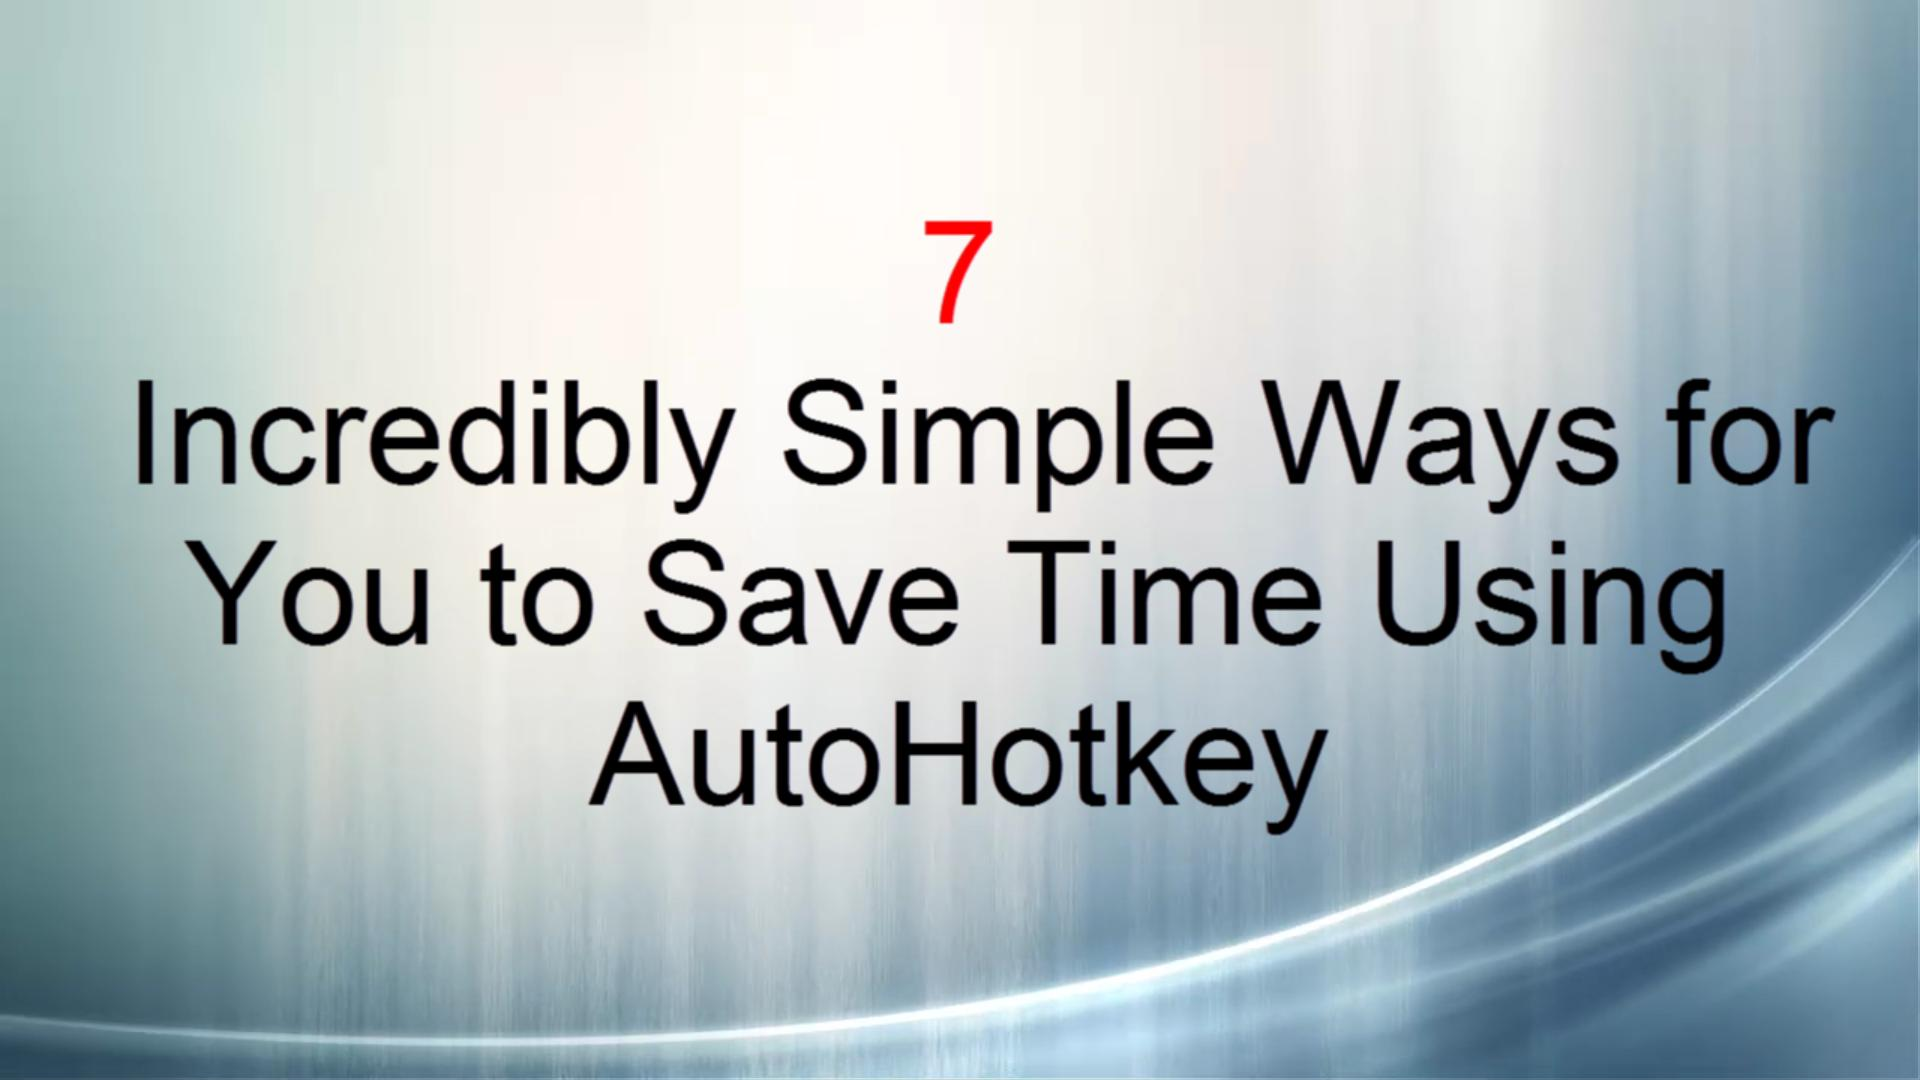 7 Incredibly Simple Ways for You to Save Time Using AutoHotkey